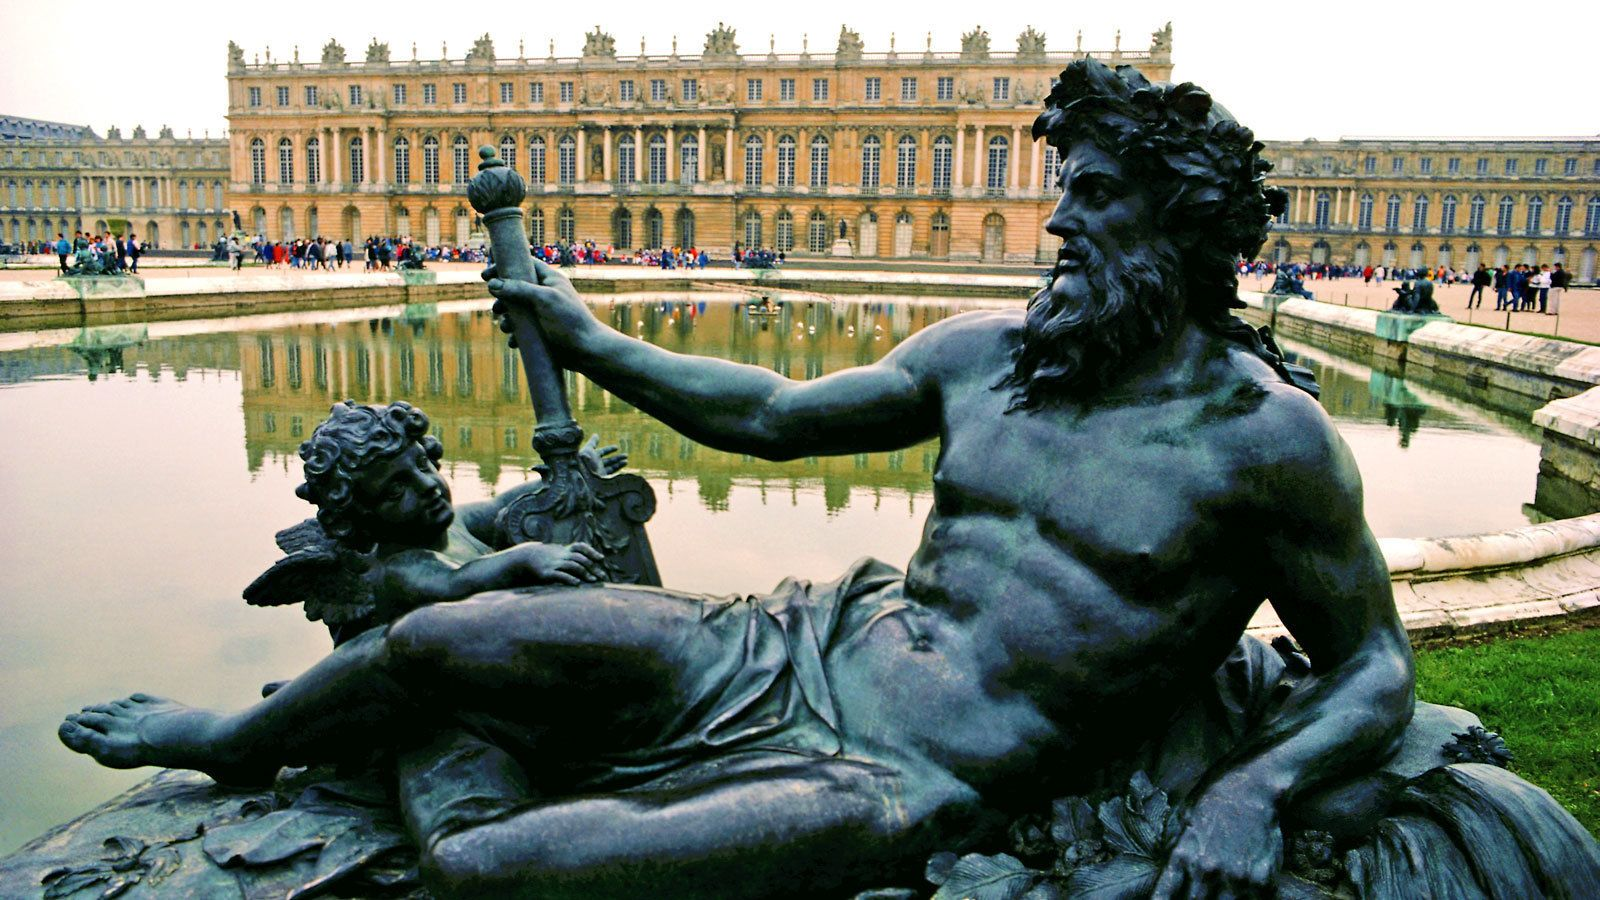 sculpture at the fountain outside of the Versailles Palace in France